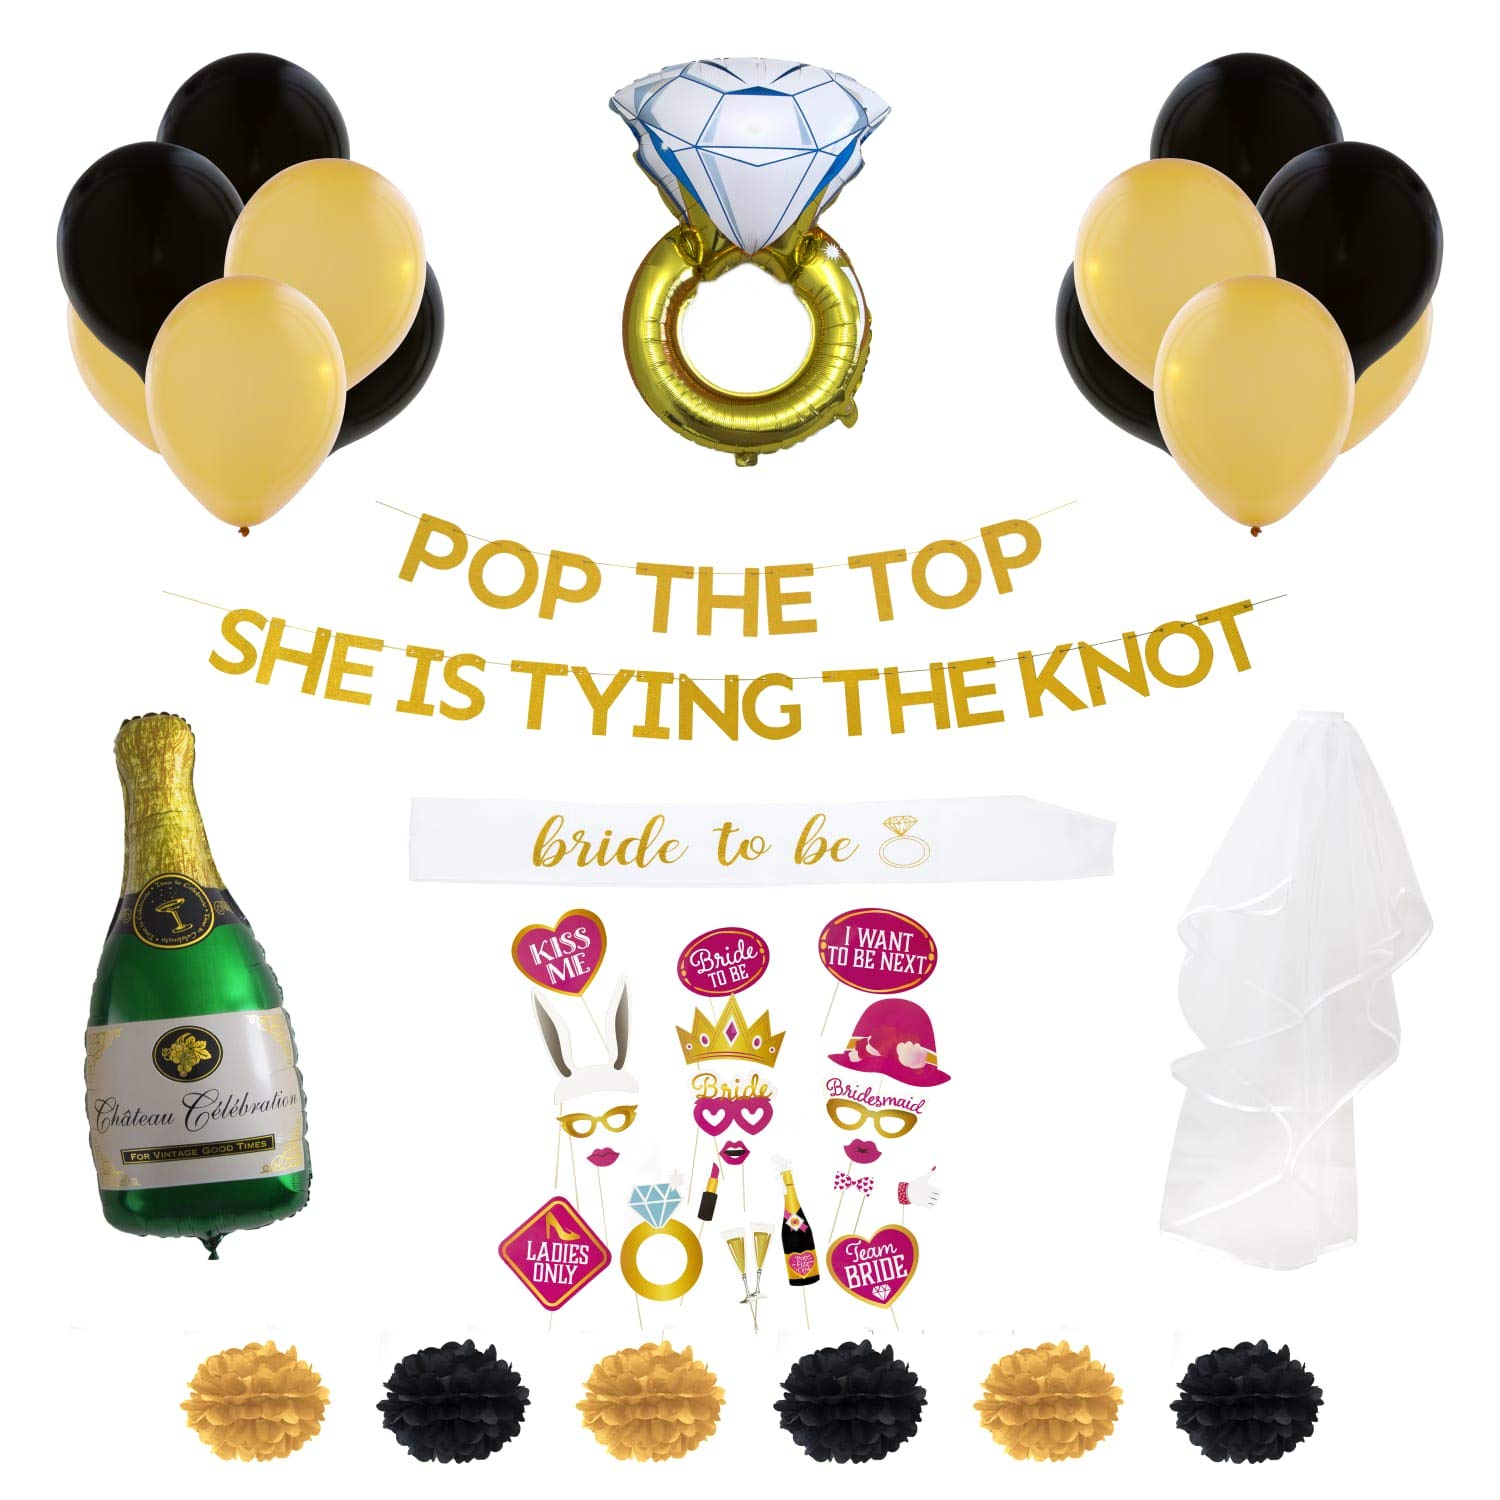 Bachelorette Party Decorations Bridal Shower Decorations Champagne Balloon Bride Banner Bride to be sash Bridal Shower Photo Props Bridal Balloons Bridal Party sash Bridal Veil by Zany Owl